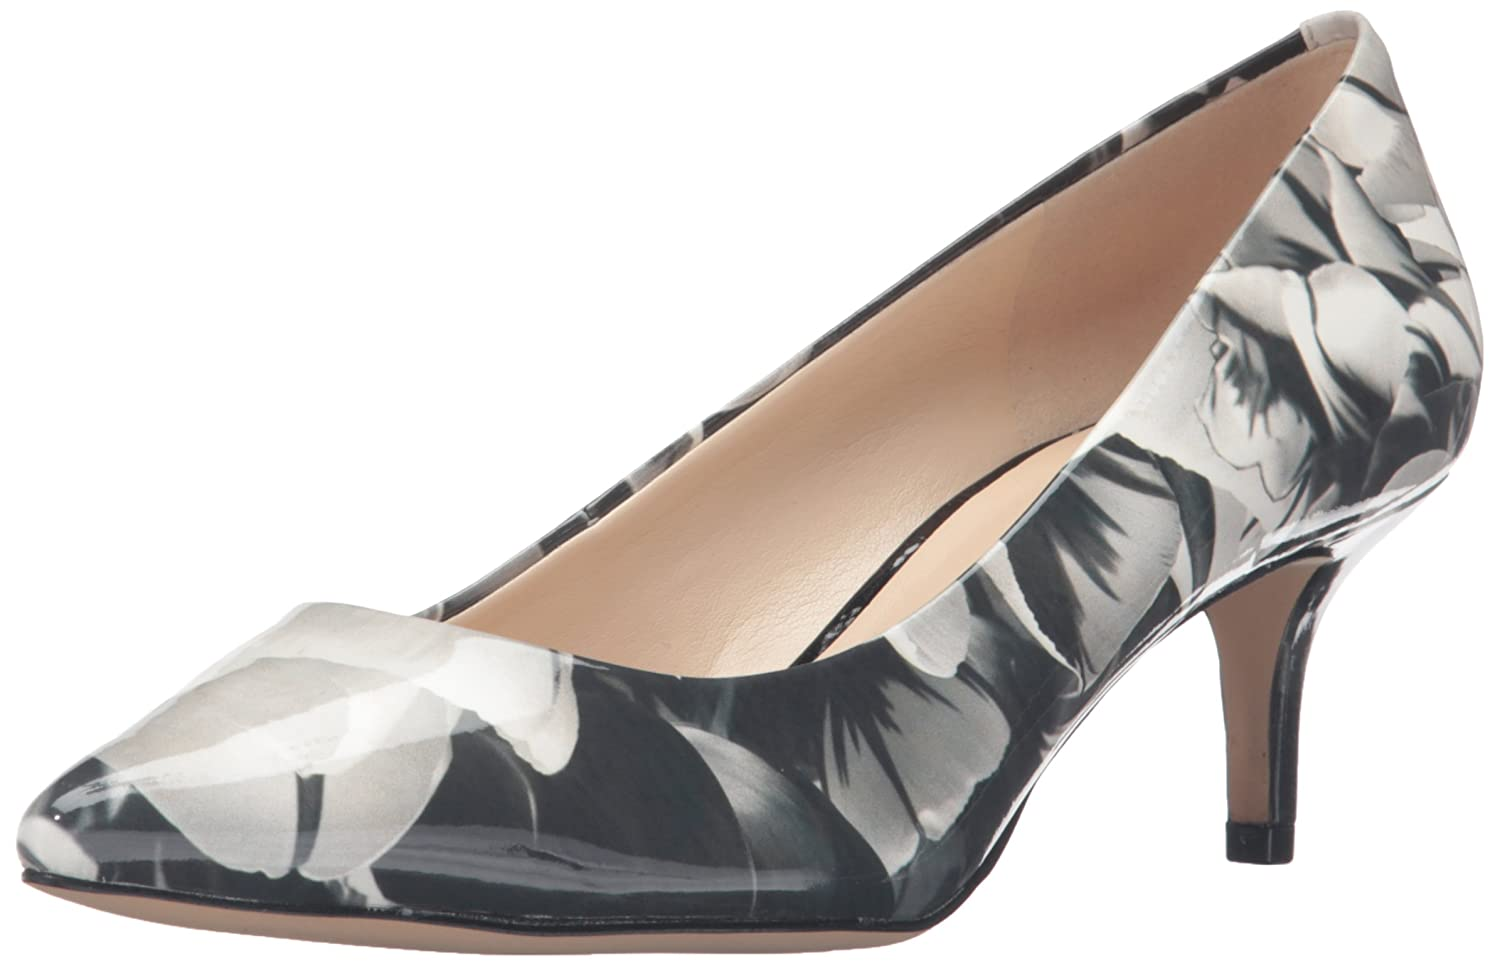 Nine West Women's Xeena Synthetic Dress Pump B01ENT5YW2 7.5 B(M) US|Black/White